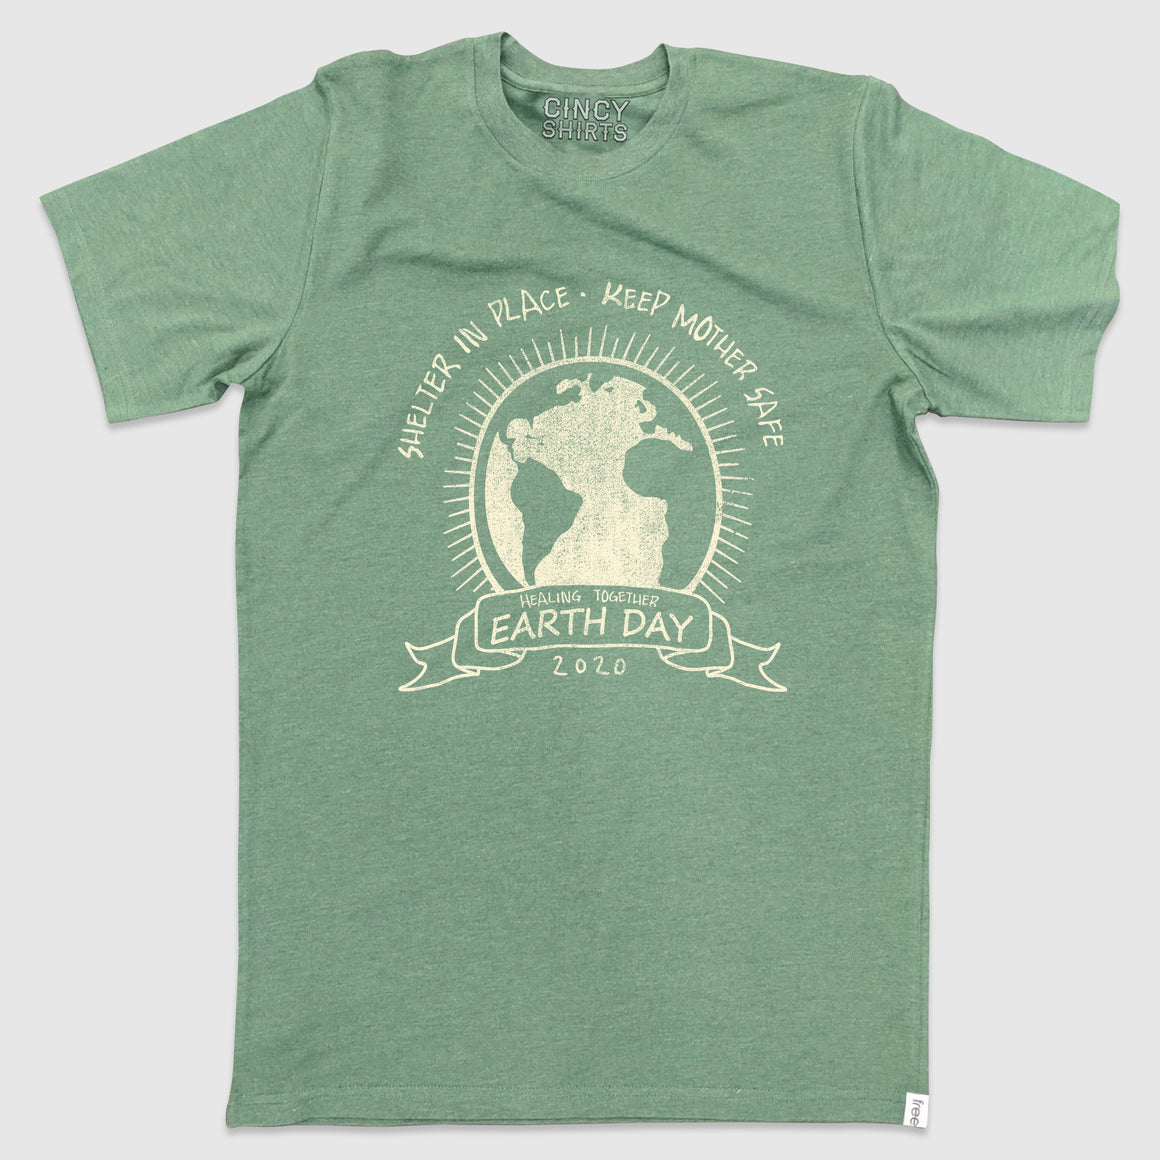 Mother Earth Day 2020 - Cincy Shirts